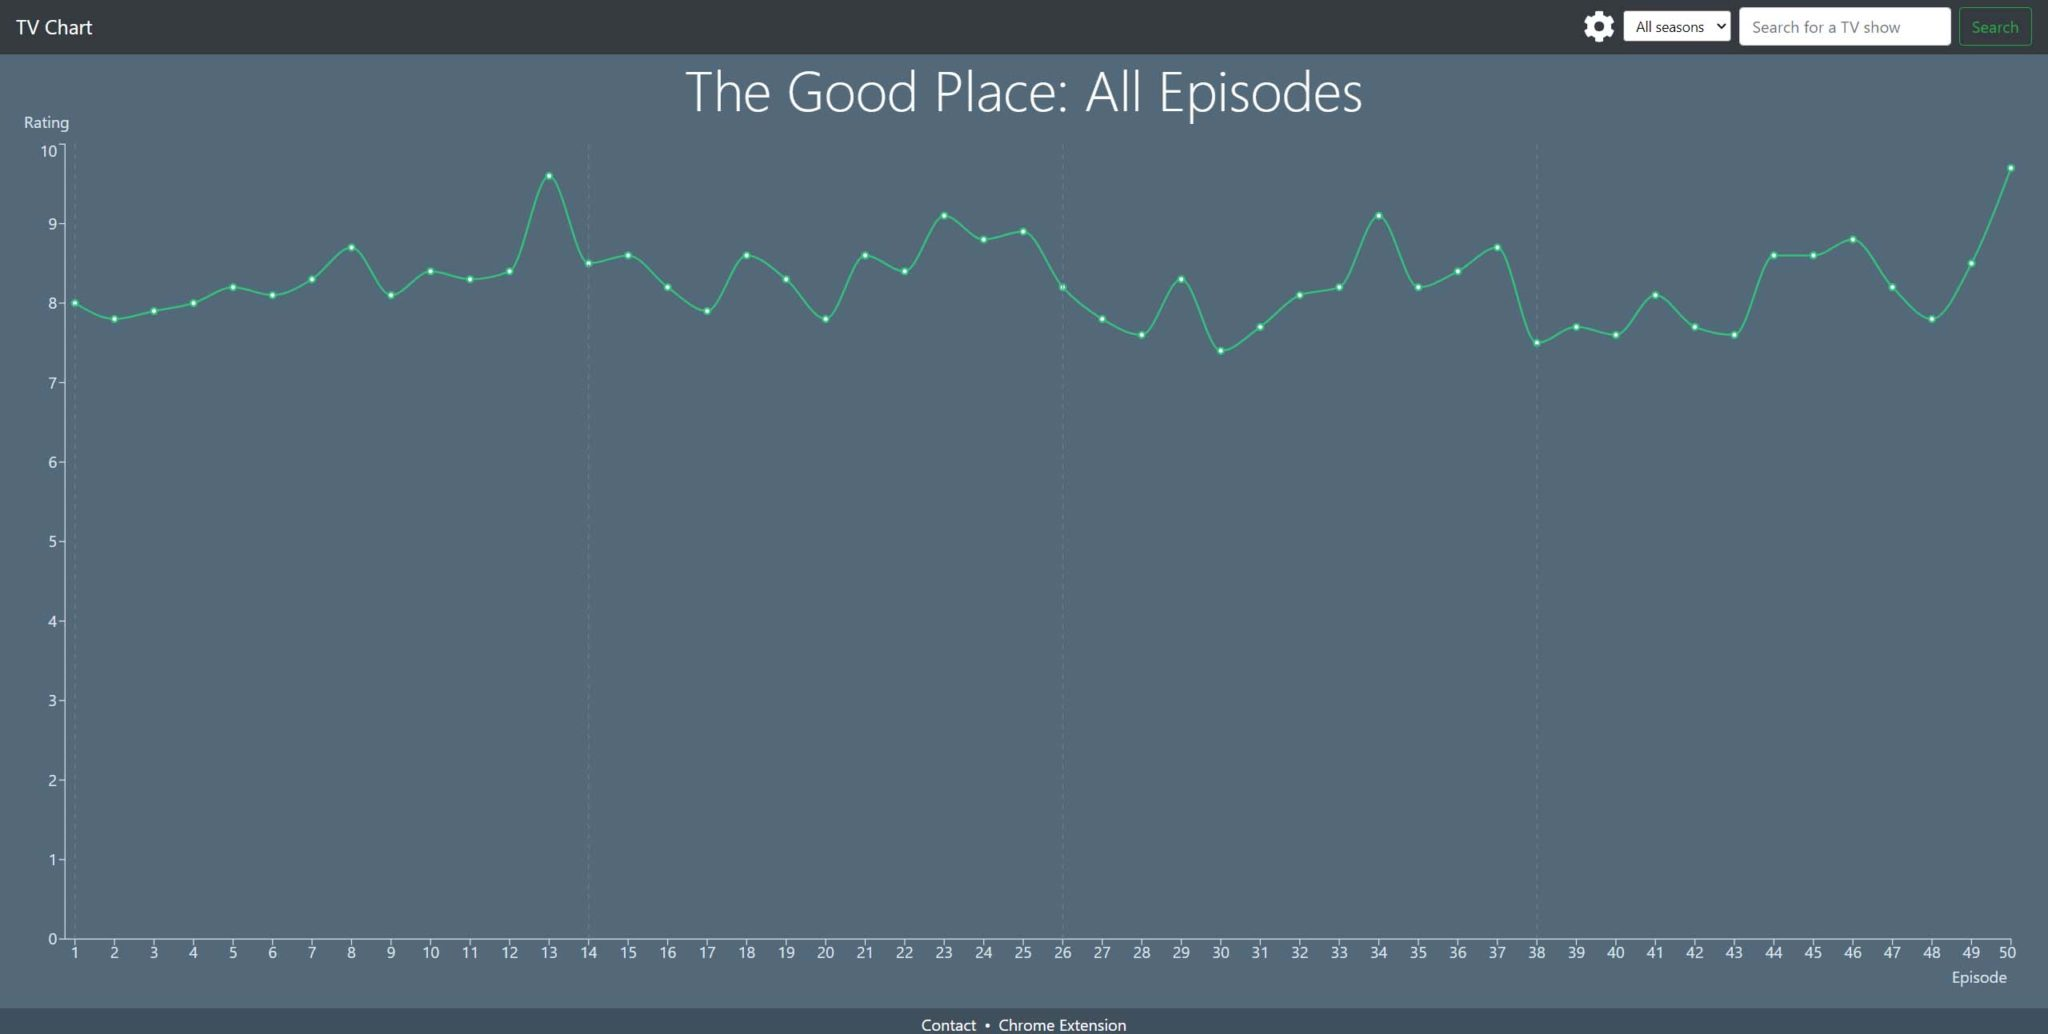 tv chart showing the good place